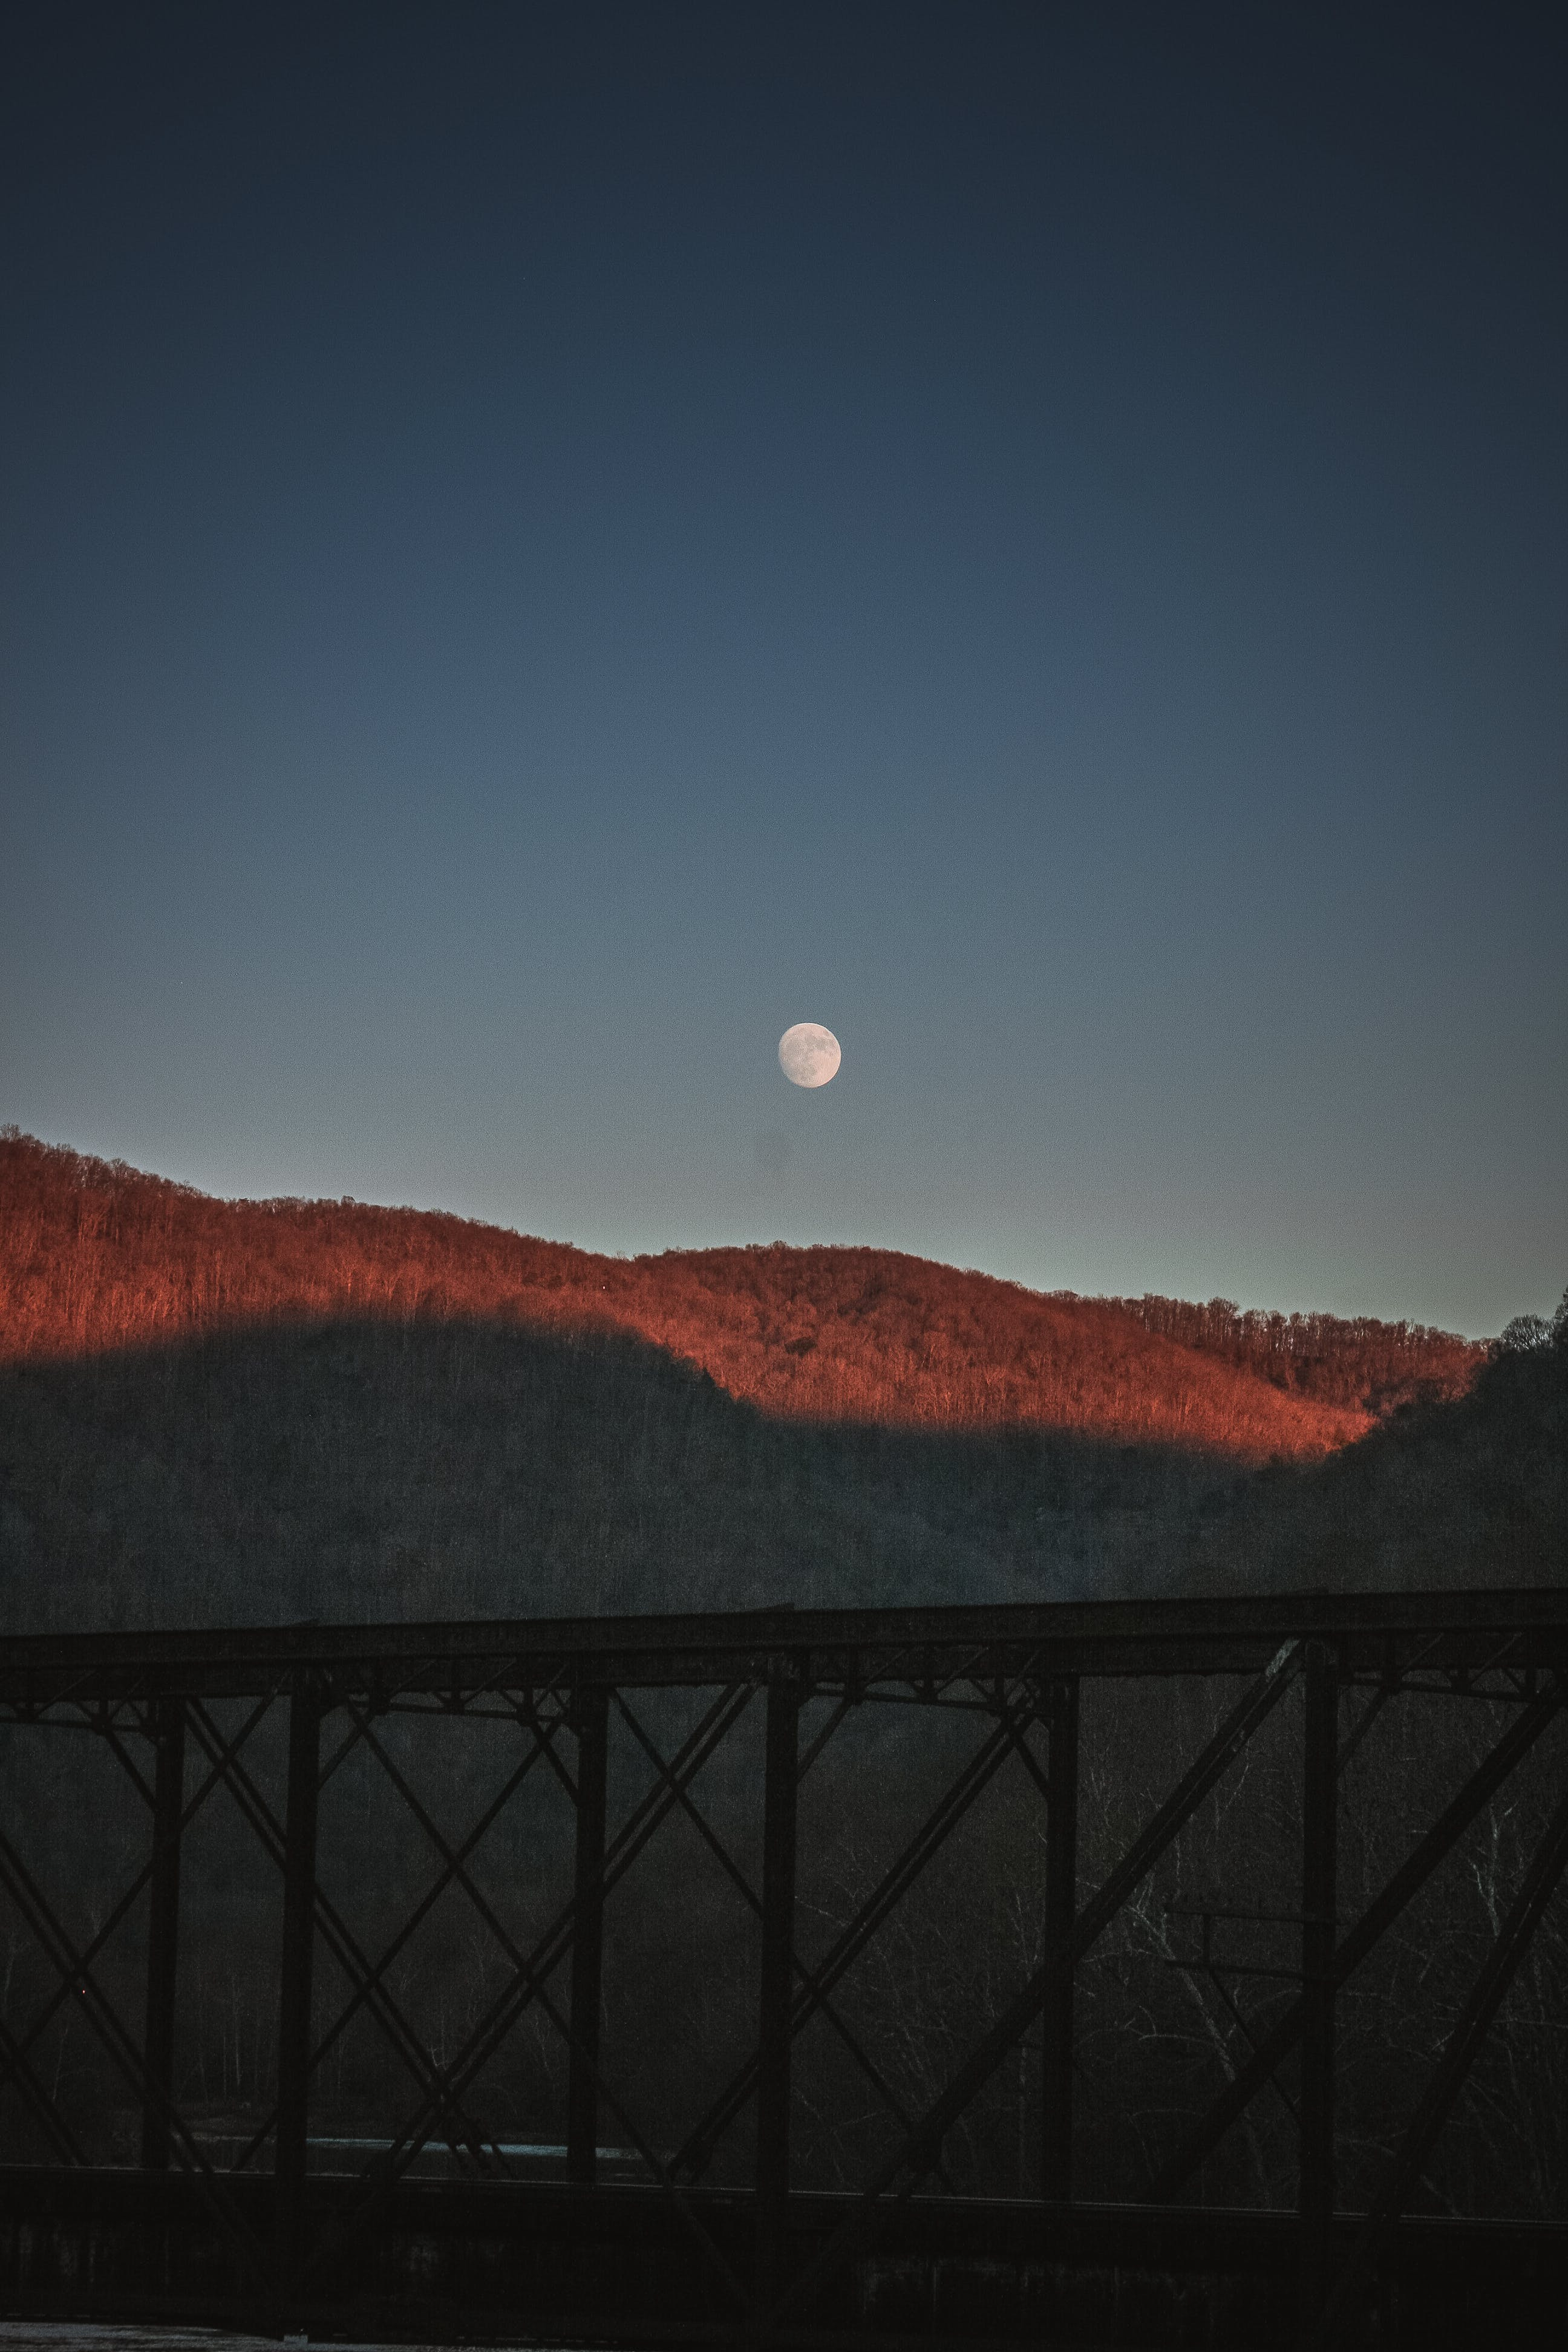 Silhouette Photography of Bridge Under Moon by Day